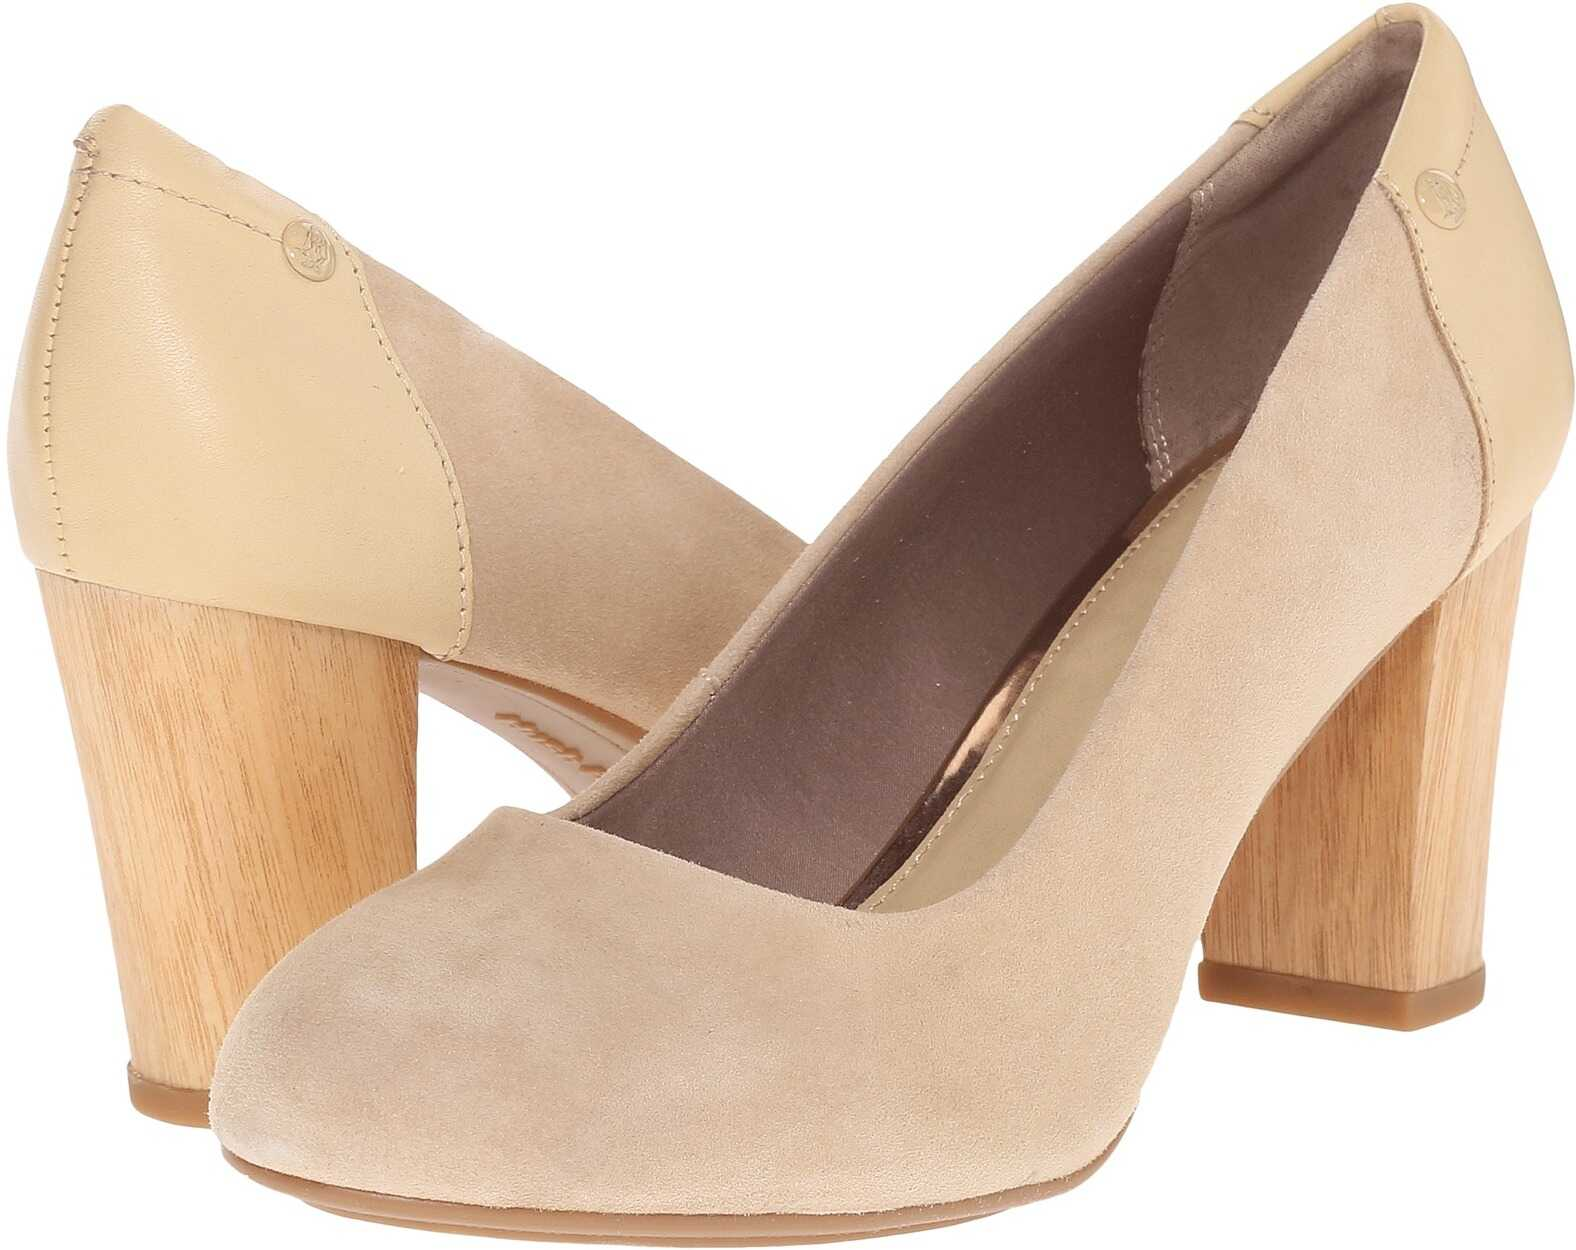 Hush Puppies Sisany Pump Light Tan Suede